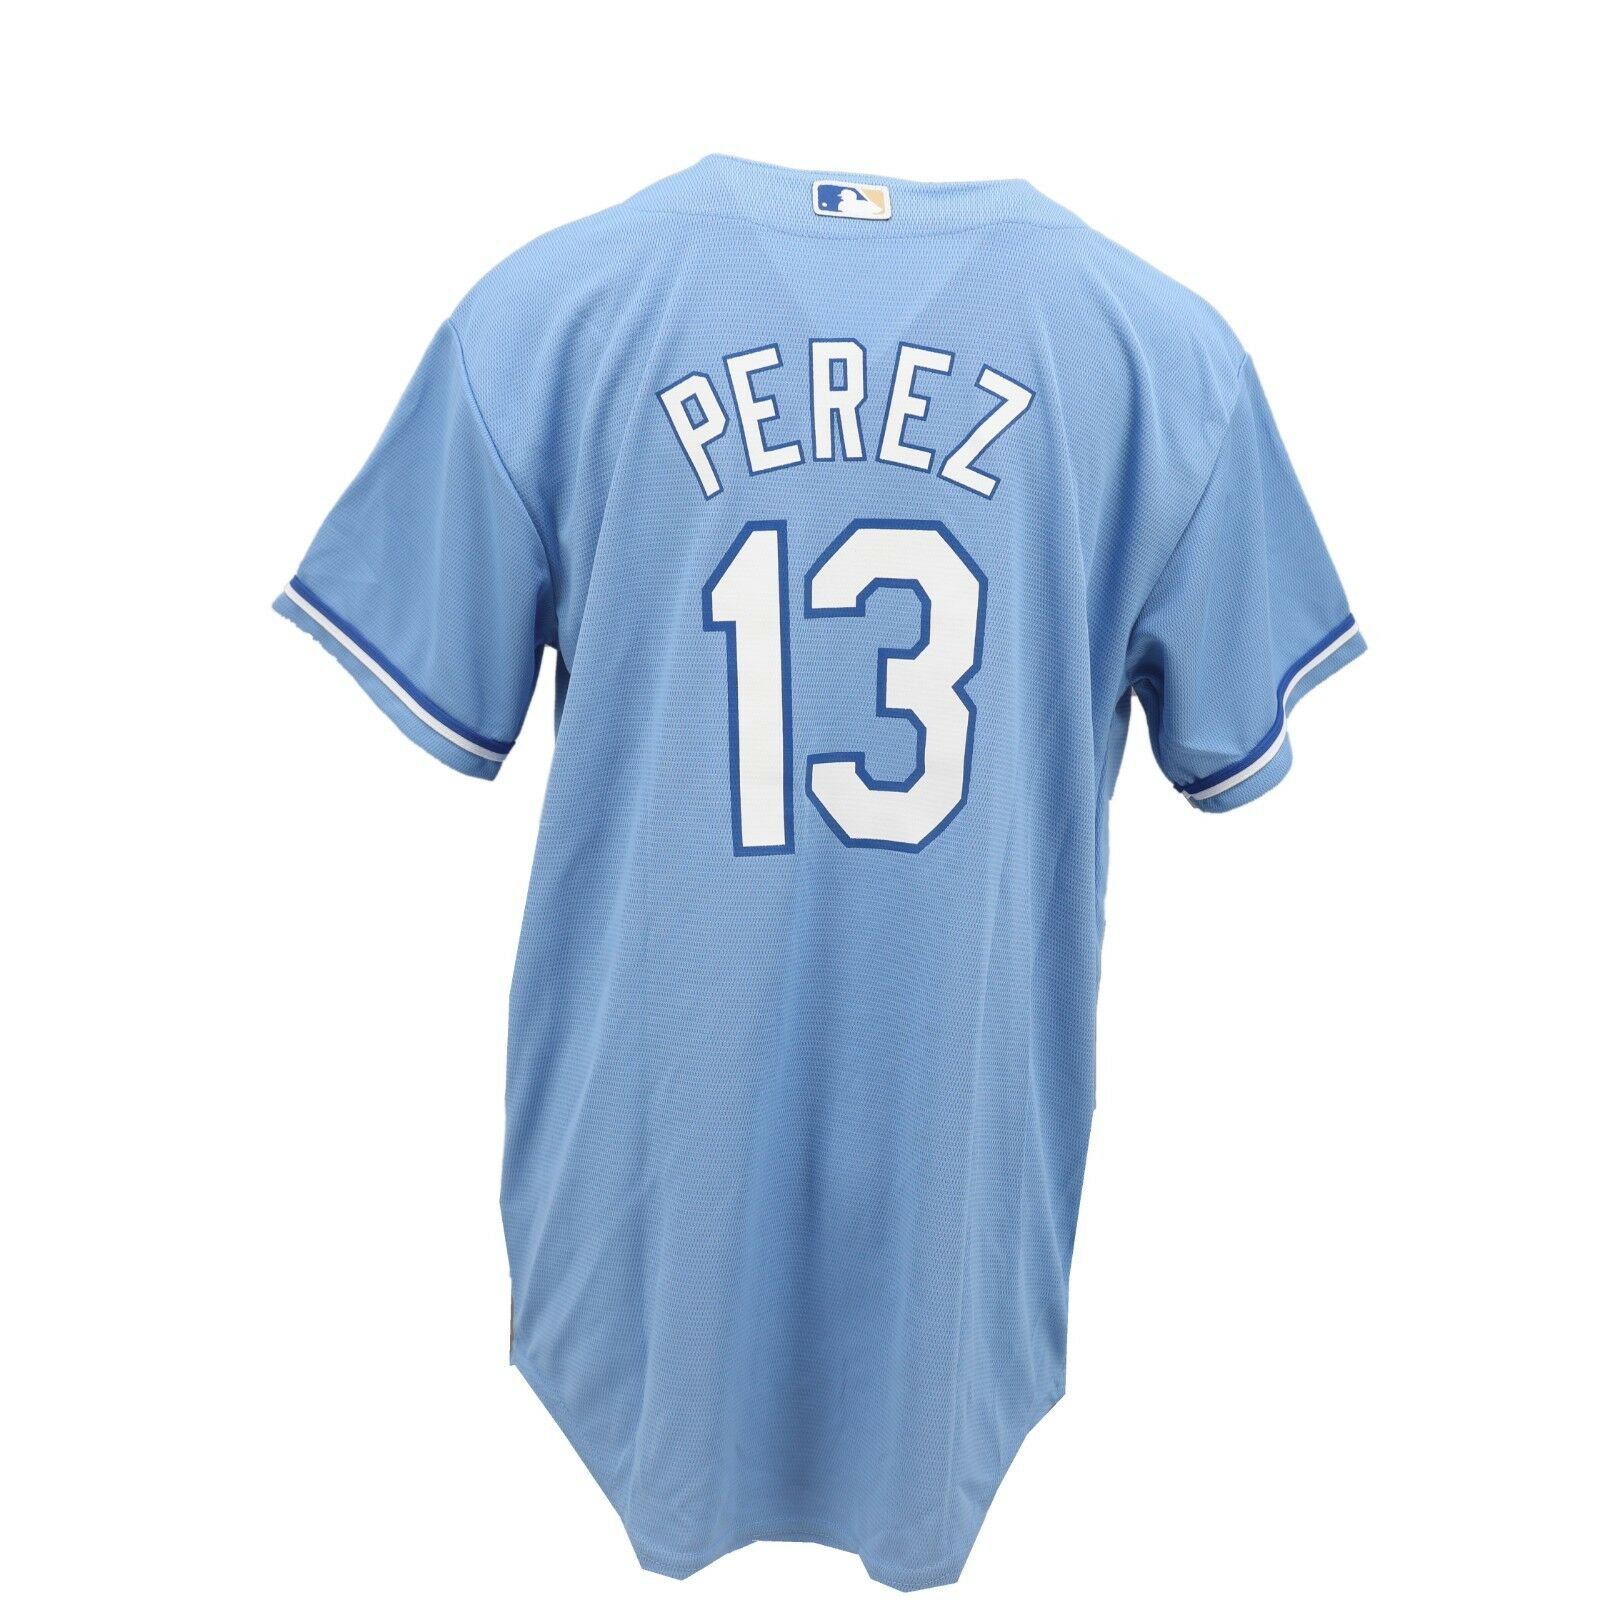 meet 05253 d04e6 Details about Majestic Cool Base Kansas City Royals MLB Kids Youth Size  Salvador Perez Jersey